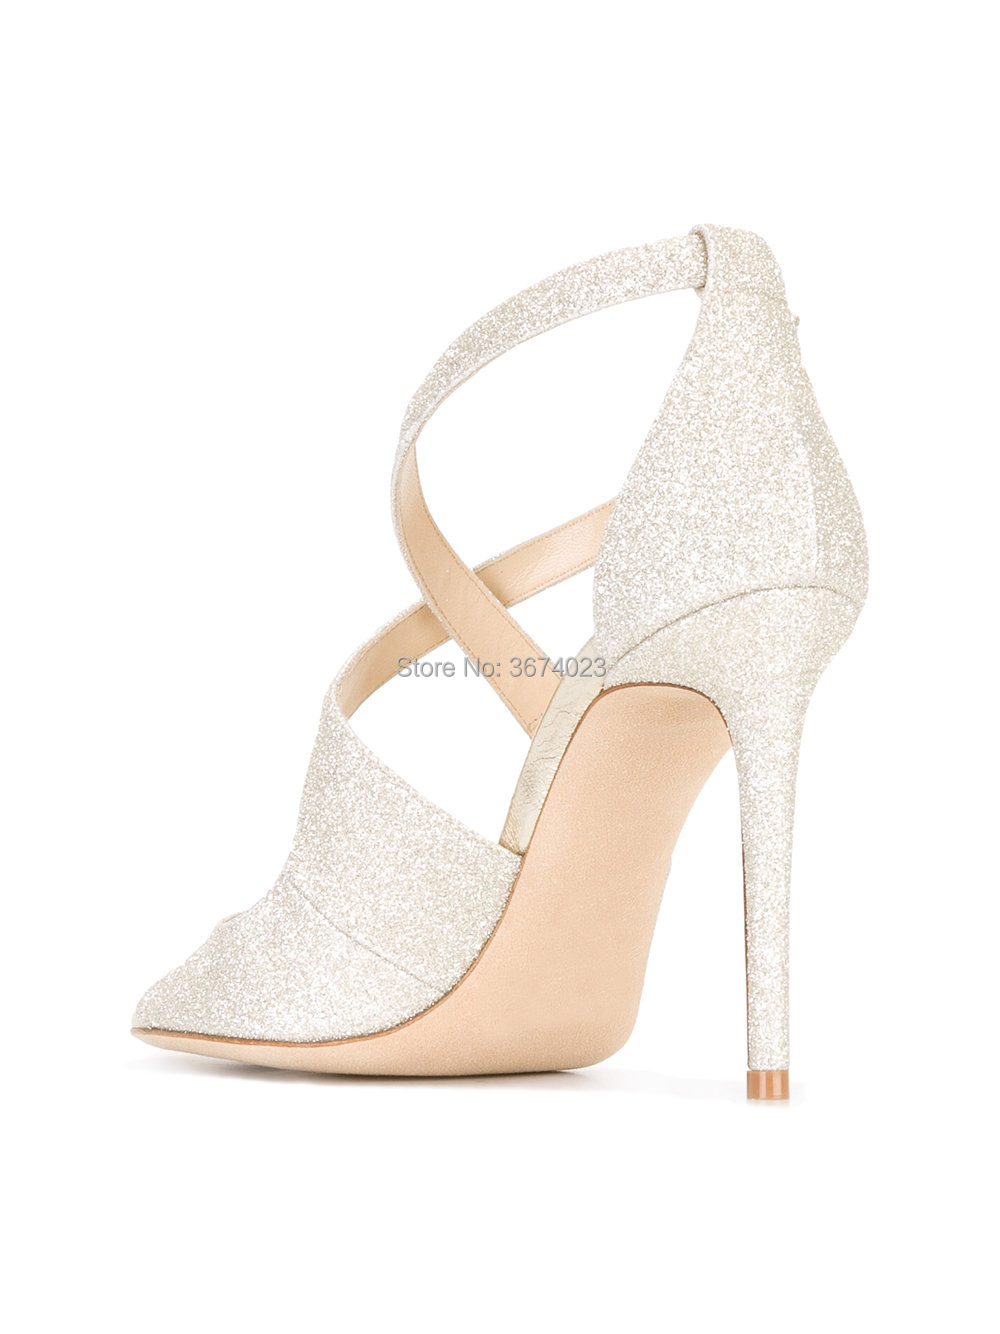 ece6c1a10e Qianruiti Design Celebrity Party Dress Sandals Peep Toe Glitter High Heels  Crossover Straps Shiny Ice Stilettos Bridal Heels New-in High Heels from ...